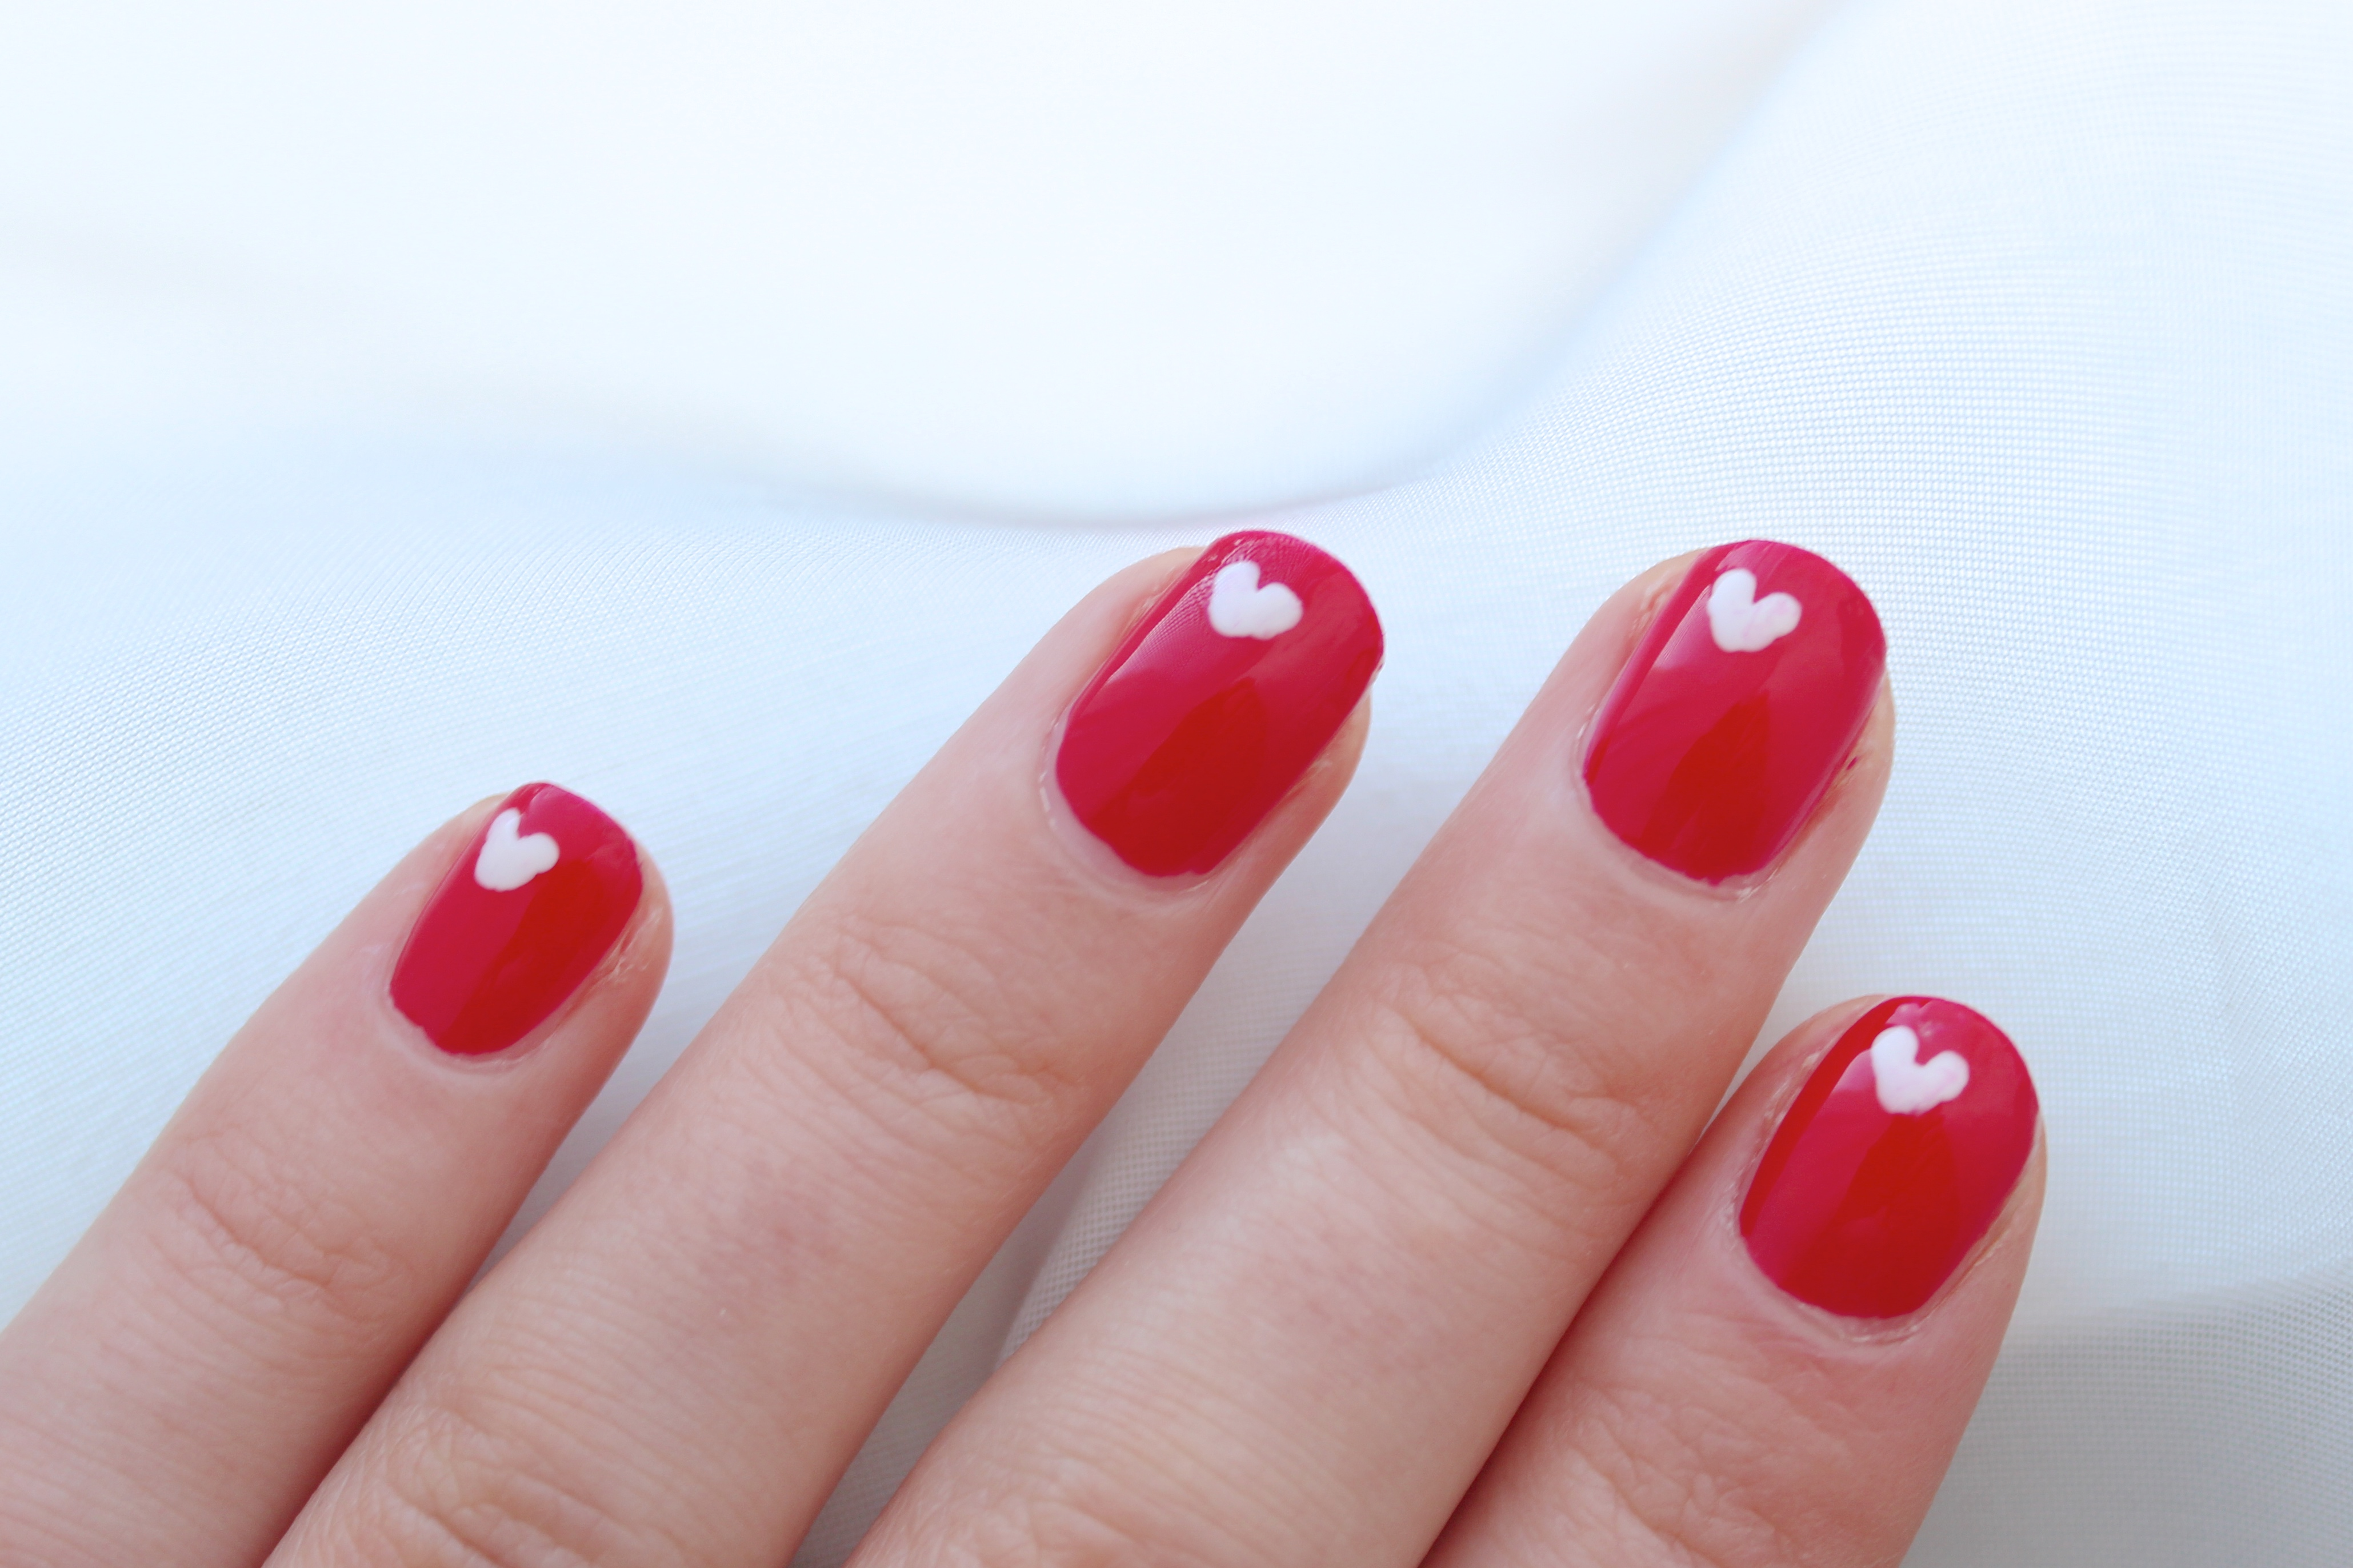 Simple heart nails weardaisywent dry before sealing them with the sally hansen acrylic top coat for extra shine and protection i hope you like this simple and cute nail design and prinsesfo Image collections